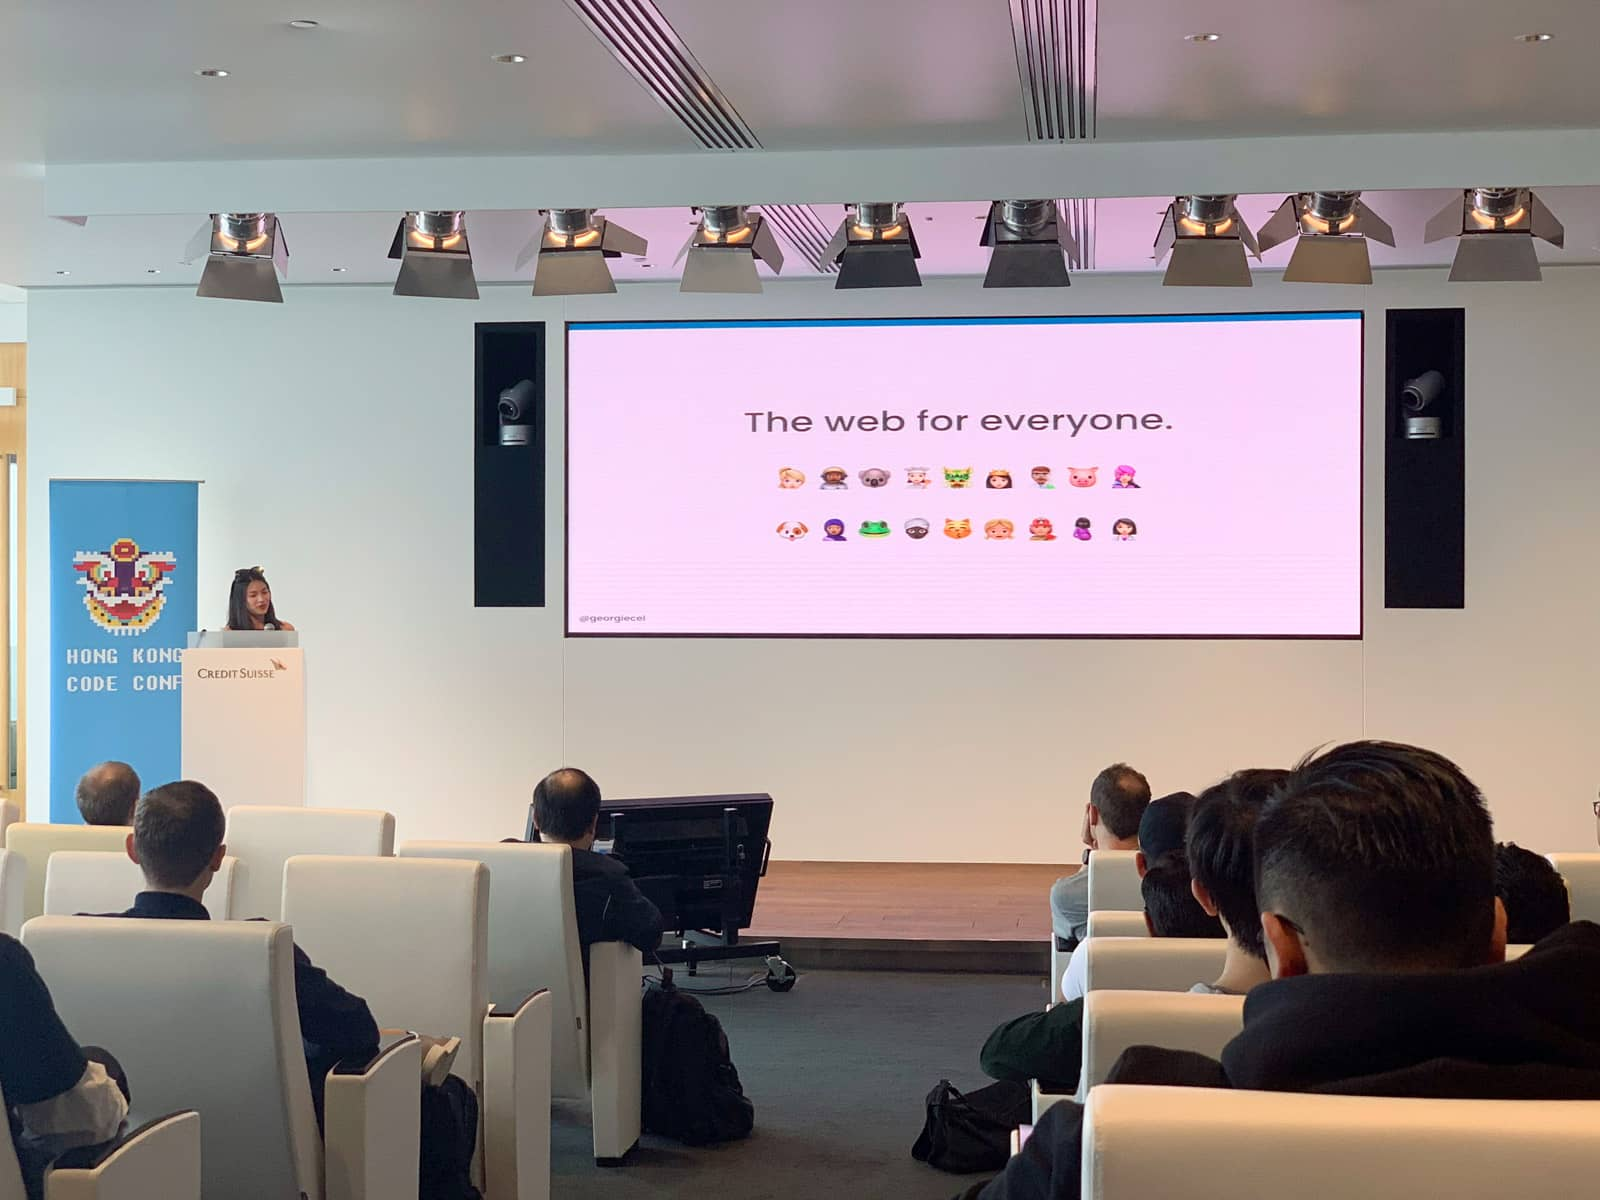 "The inside of a conference room with a wide screen showing ""The web for everyone"" and a number of different emoji to represent diversity. A woman stands at a podium at the front of the room on a stage."